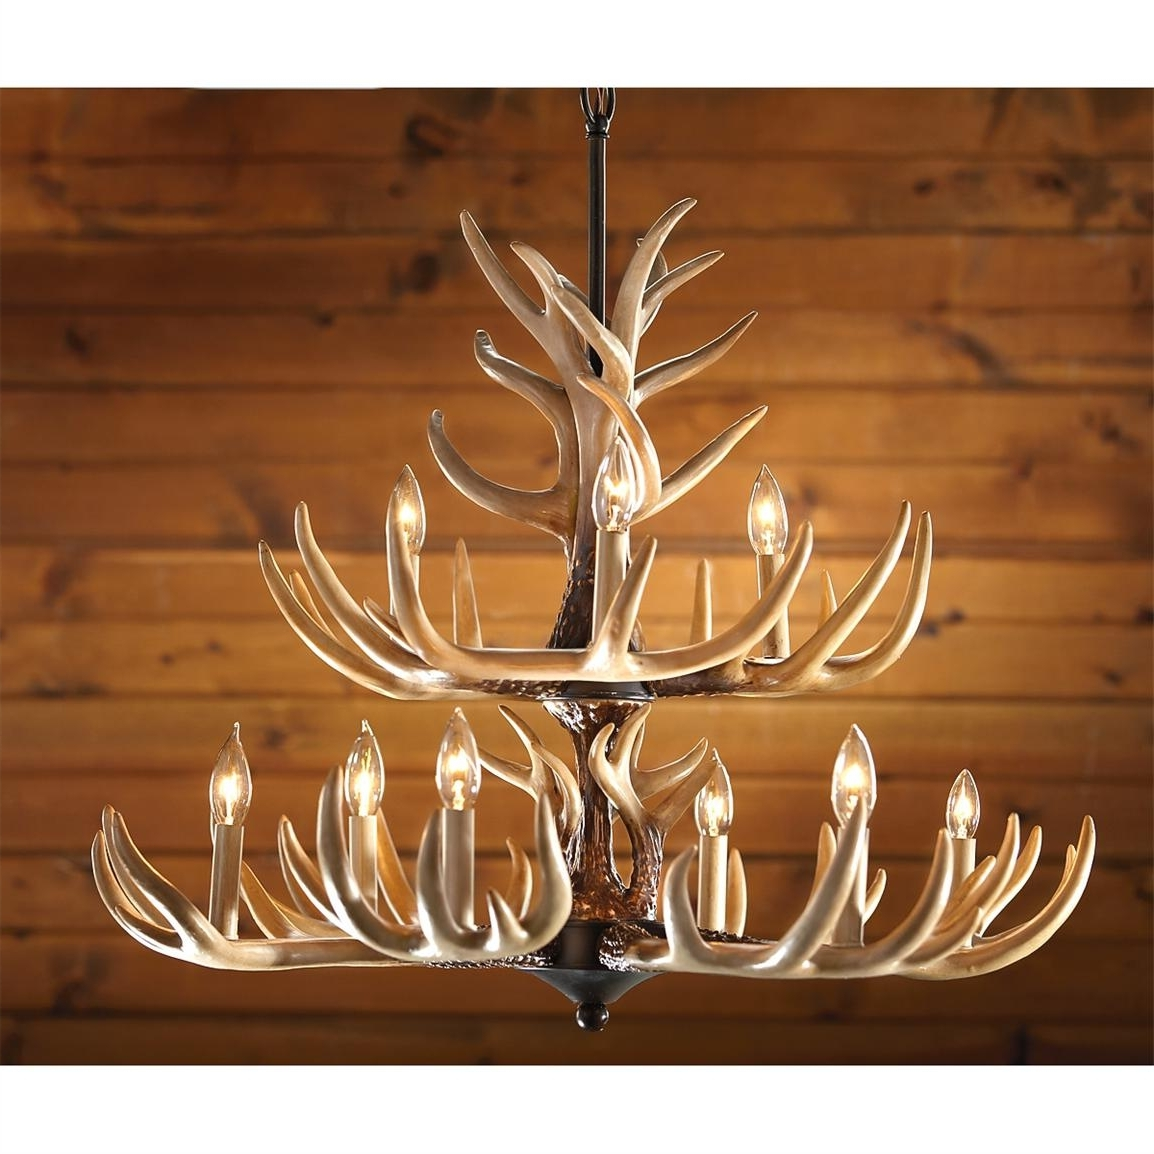 Newest Castlecreek 9 Light Whitetail Antler Chandelier – 226093, Lighting Pertaining To Antler Chandeliers And Lighting (Gallery 2 of 20)